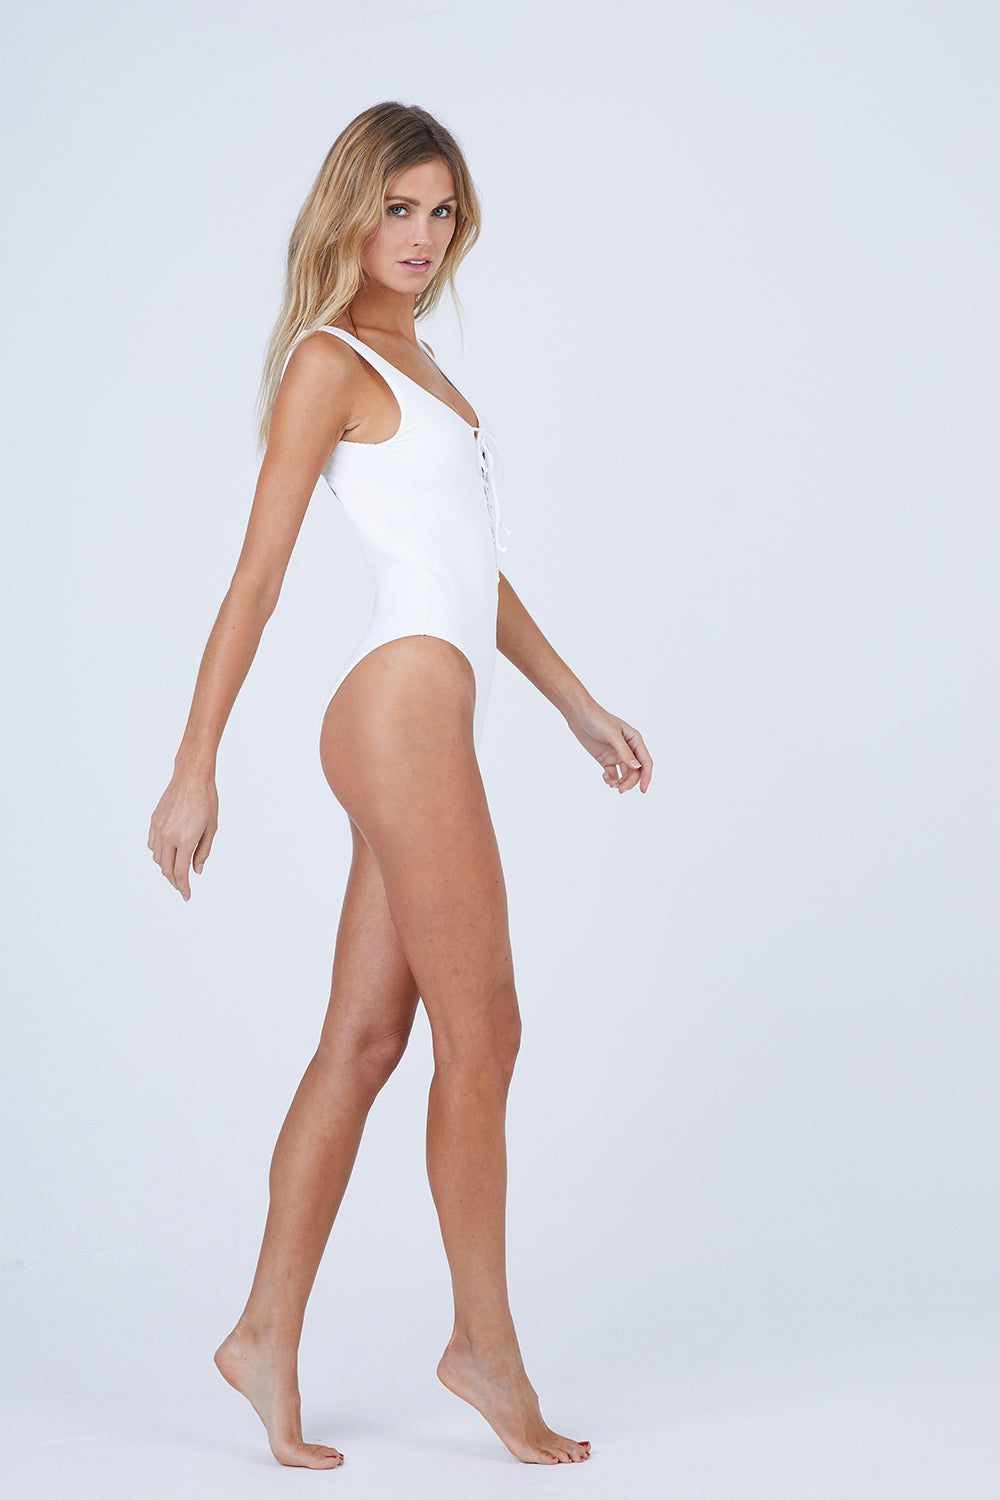 ONIA Bridget Lace Up Front One Piece Swimsuit - Marshmallow Rib One Piece | Marshmallow Rib| Bridget Lace Up Front One Piece Swimsuit - Marshmallow Scoop Neckline Lace Up Front Detail Low Scoop Back Thick Shoulder Straps High Cut Leg Cheeky Coverage Ribbed Fabric  Front View